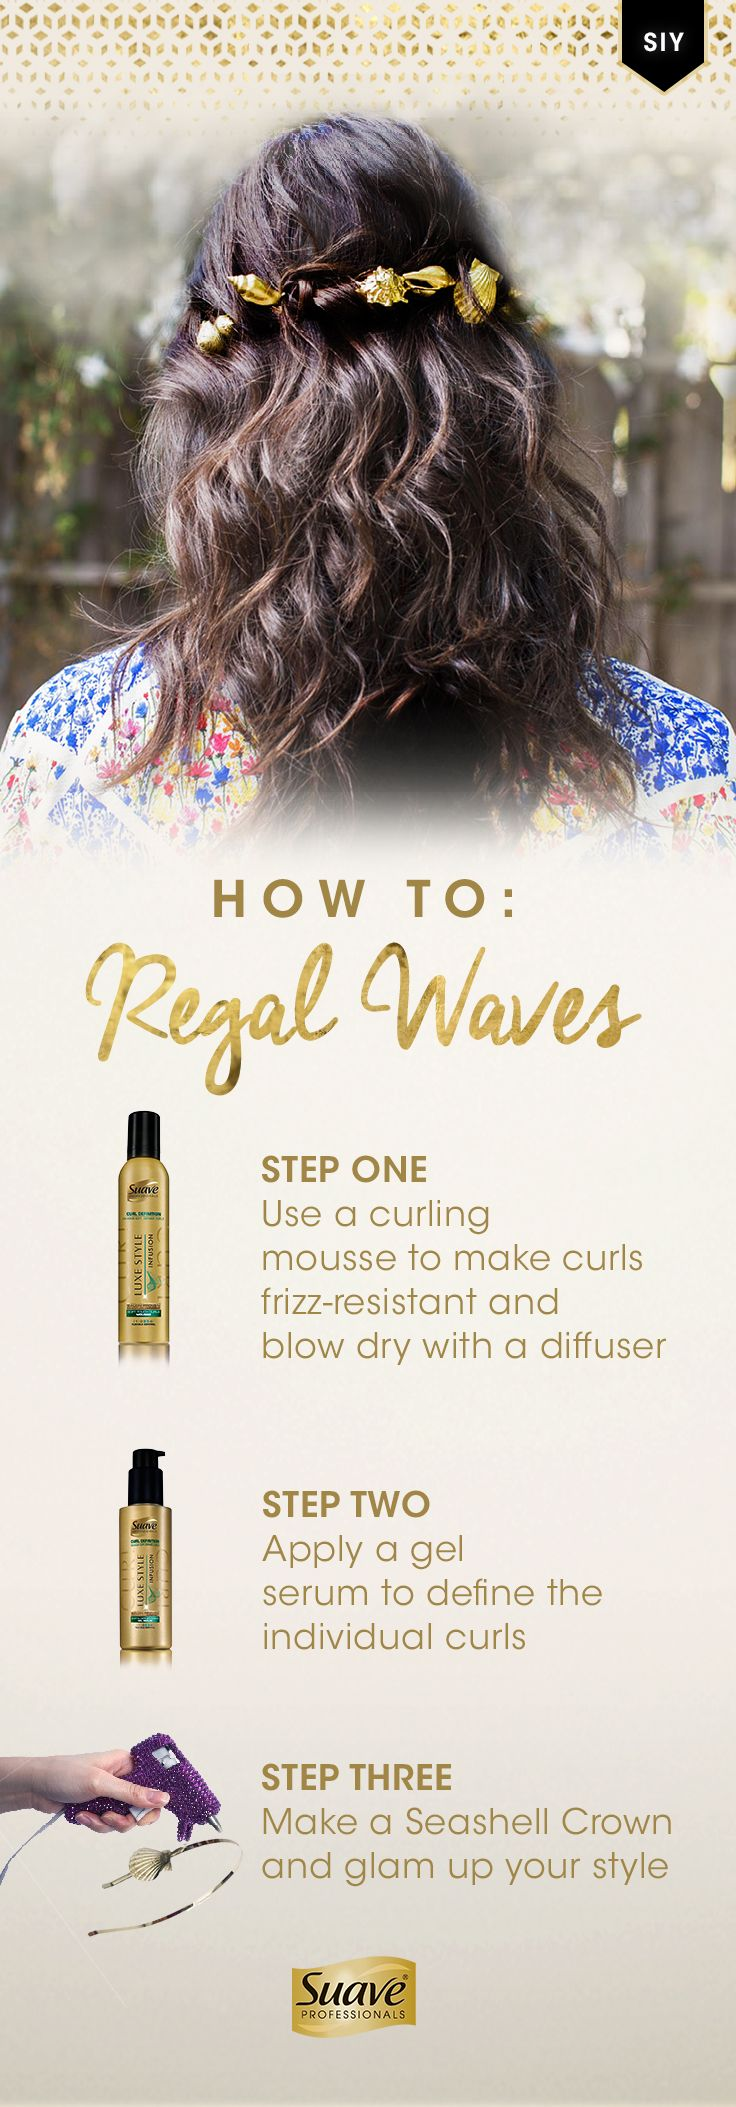 Pair mermaid-inspired waves with an elegant DIY Seashell Crown like @psimadethis. Step 1: Apply Suave Professionals Luxe Style Infusion Curl Defining Soft Touch Curls Mousse and blow dry with a diffuser for soft curls. Step 2: Use Suave Professionals Luxe Style Infusion Curl Defining Gel Serum to keep curls defined. Step 3: Tease the hair on the crown of your head, put on the seashell headband and secure it with bobby pins. Click-through to learn how to make your own the Seashell Crown…